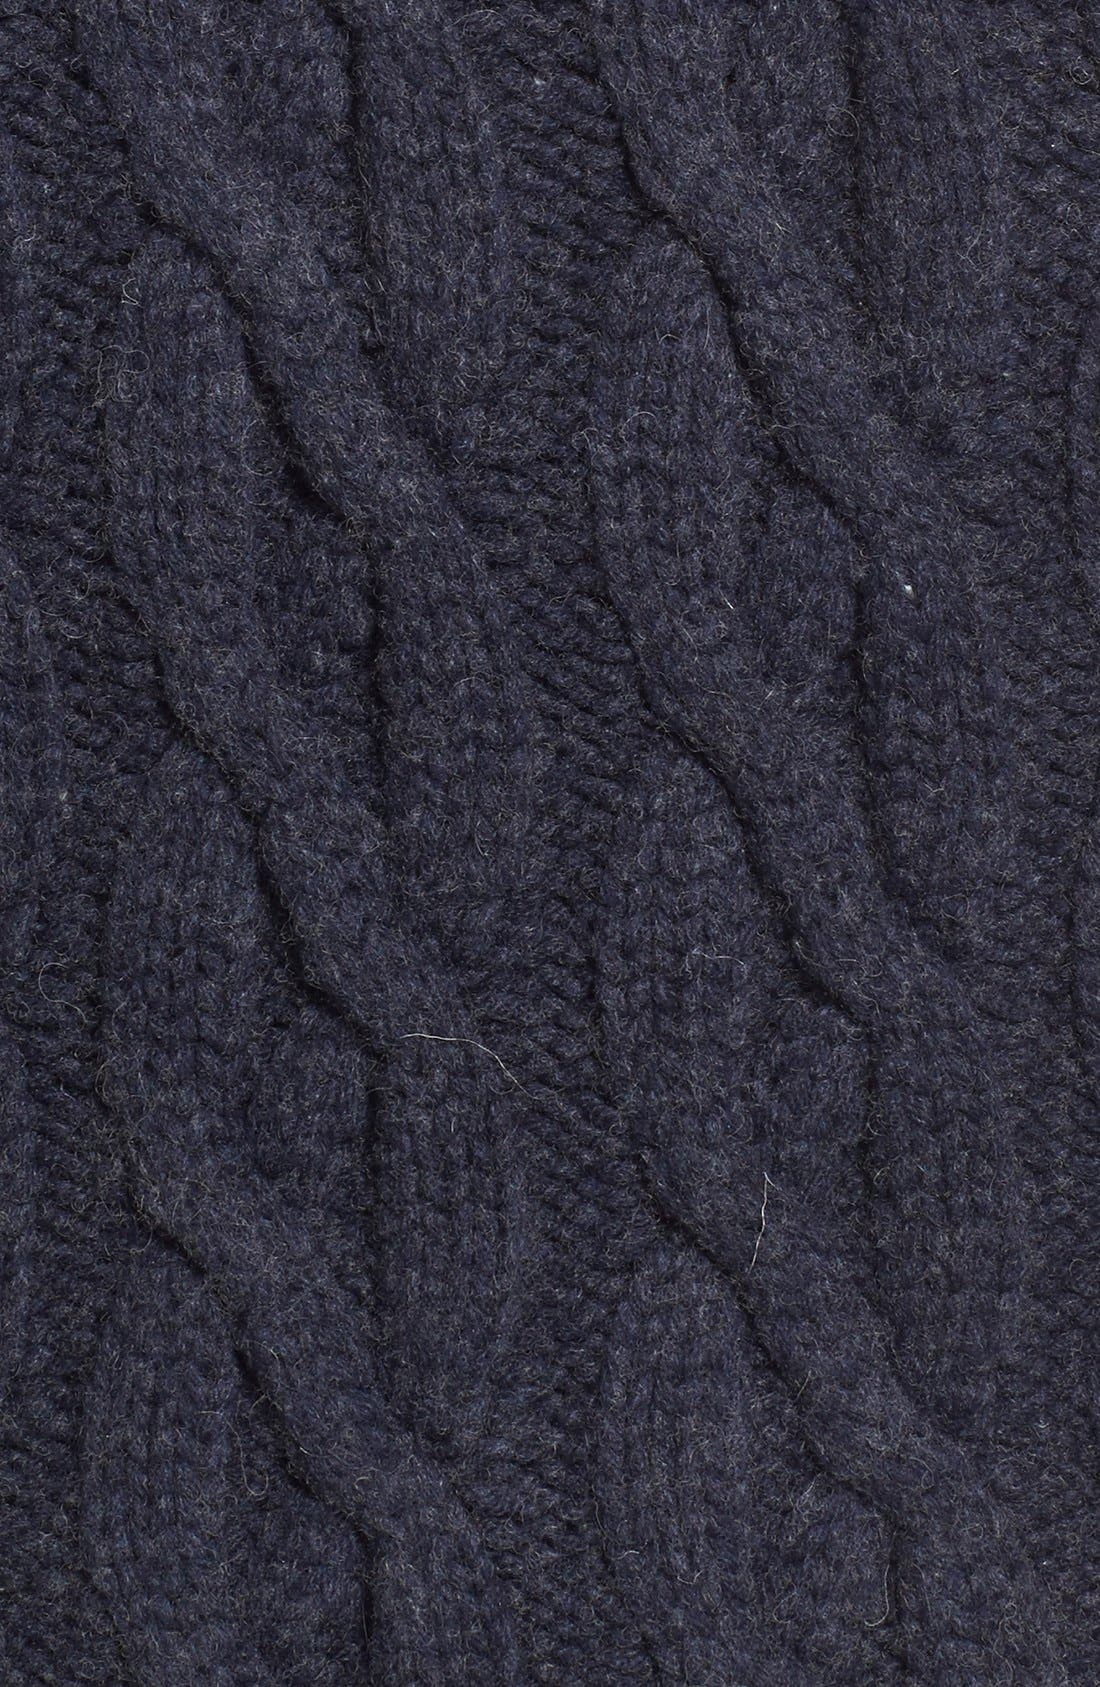 Regular Fit Cable Knit Crewneck Wool Blend Sweater,                             Alternate thumbnail 5, color,                             Navy